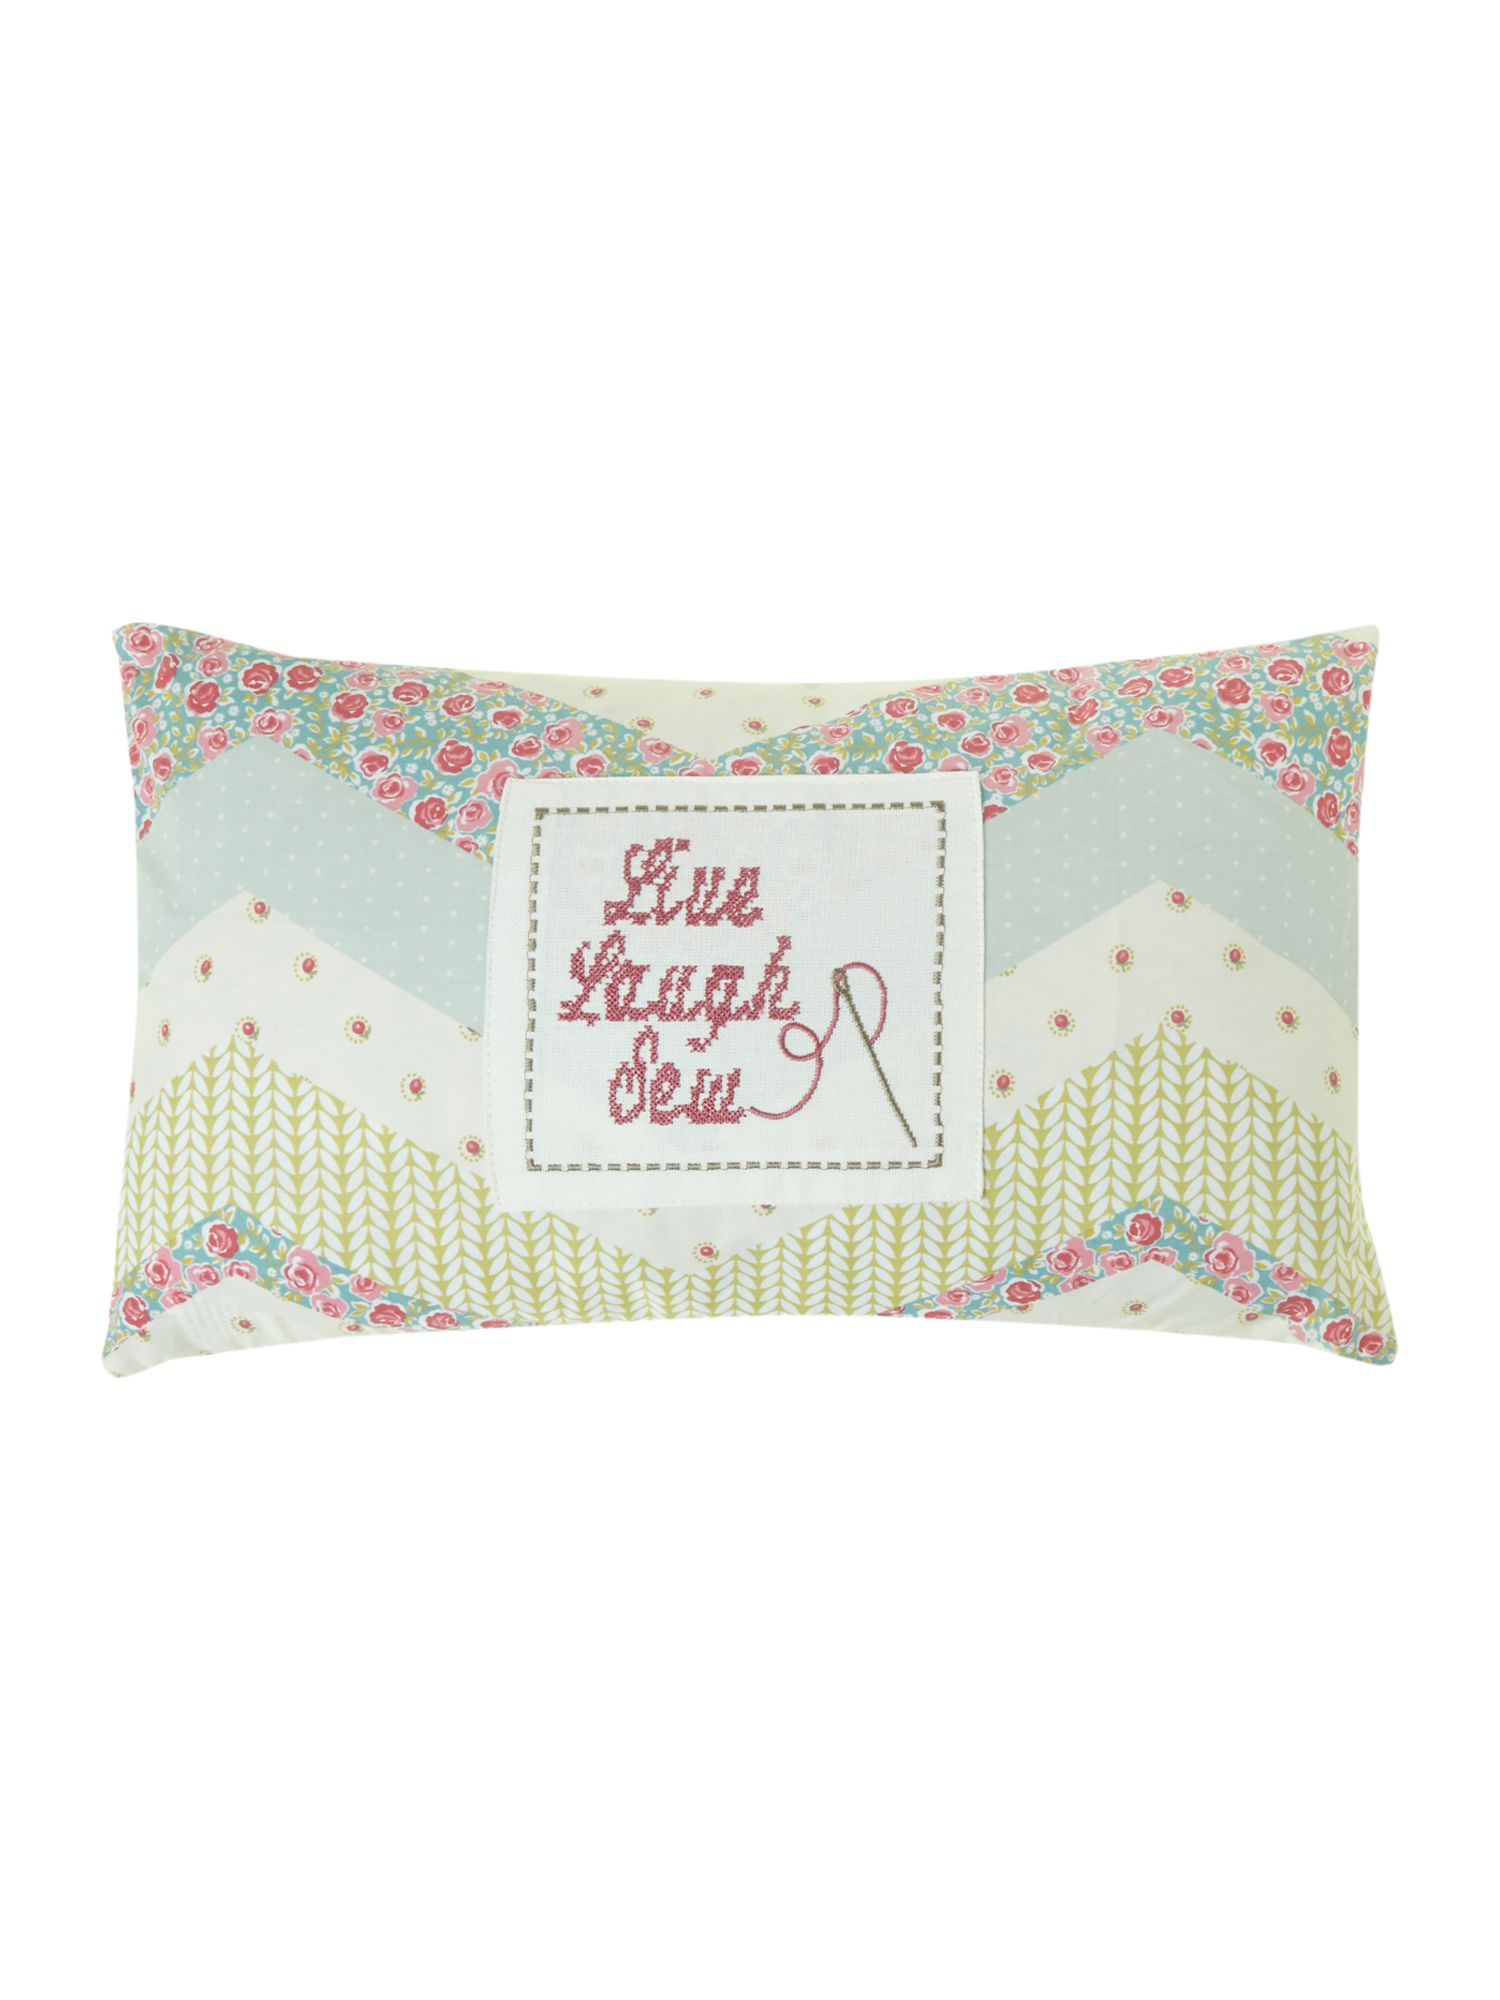 Wilma Duckegg cushion